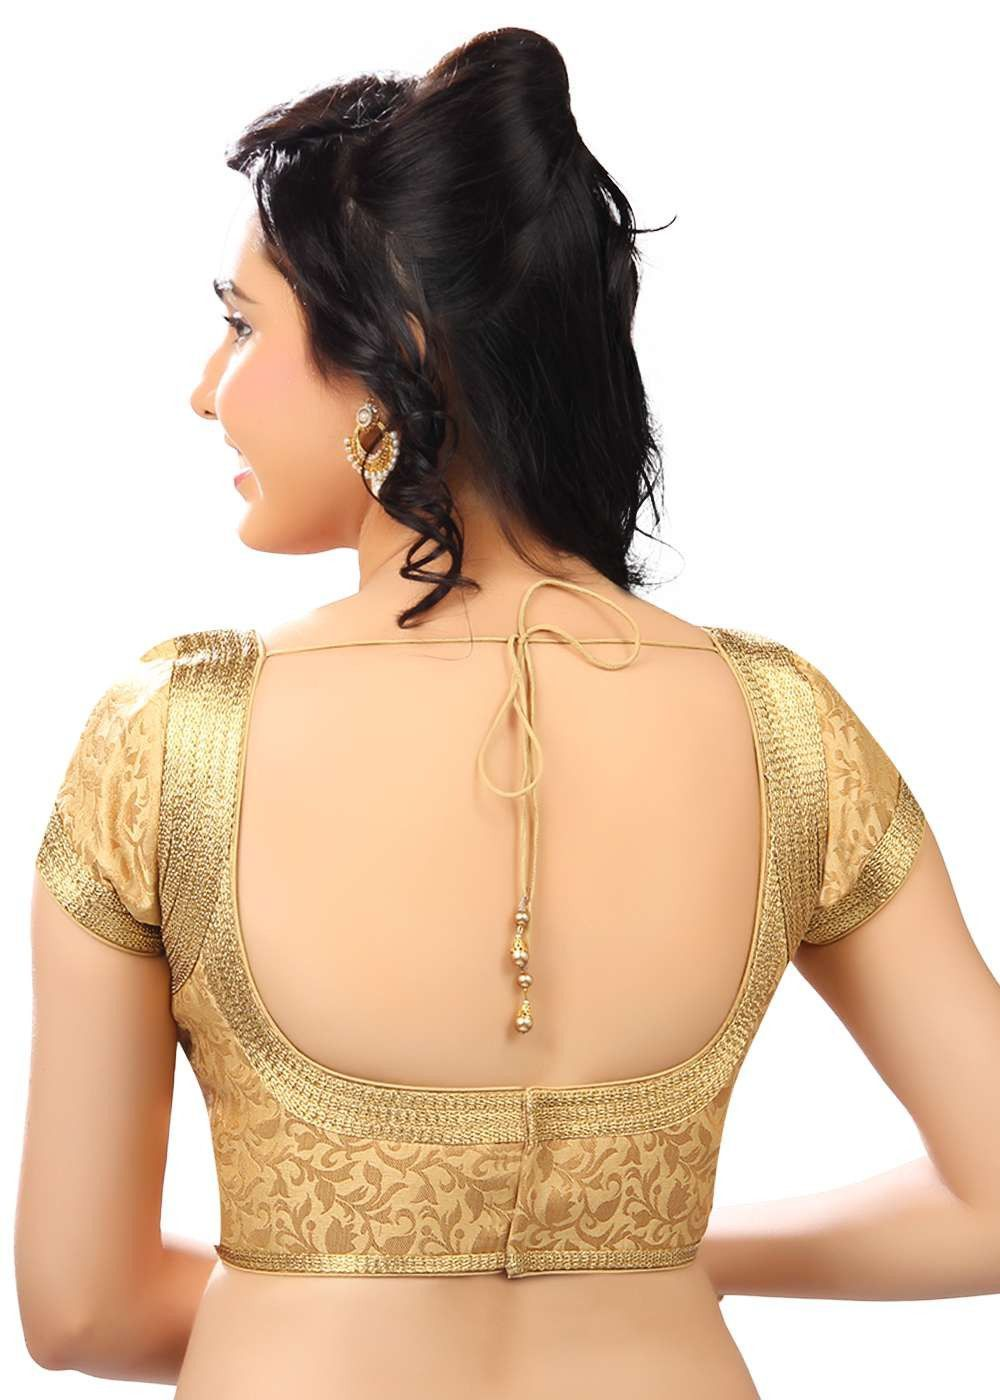 Blouse designs saree blouse back designs blouses neck designs 30 jpg - Top 60 Latest Blouse Back Neck Designs Designers Choice